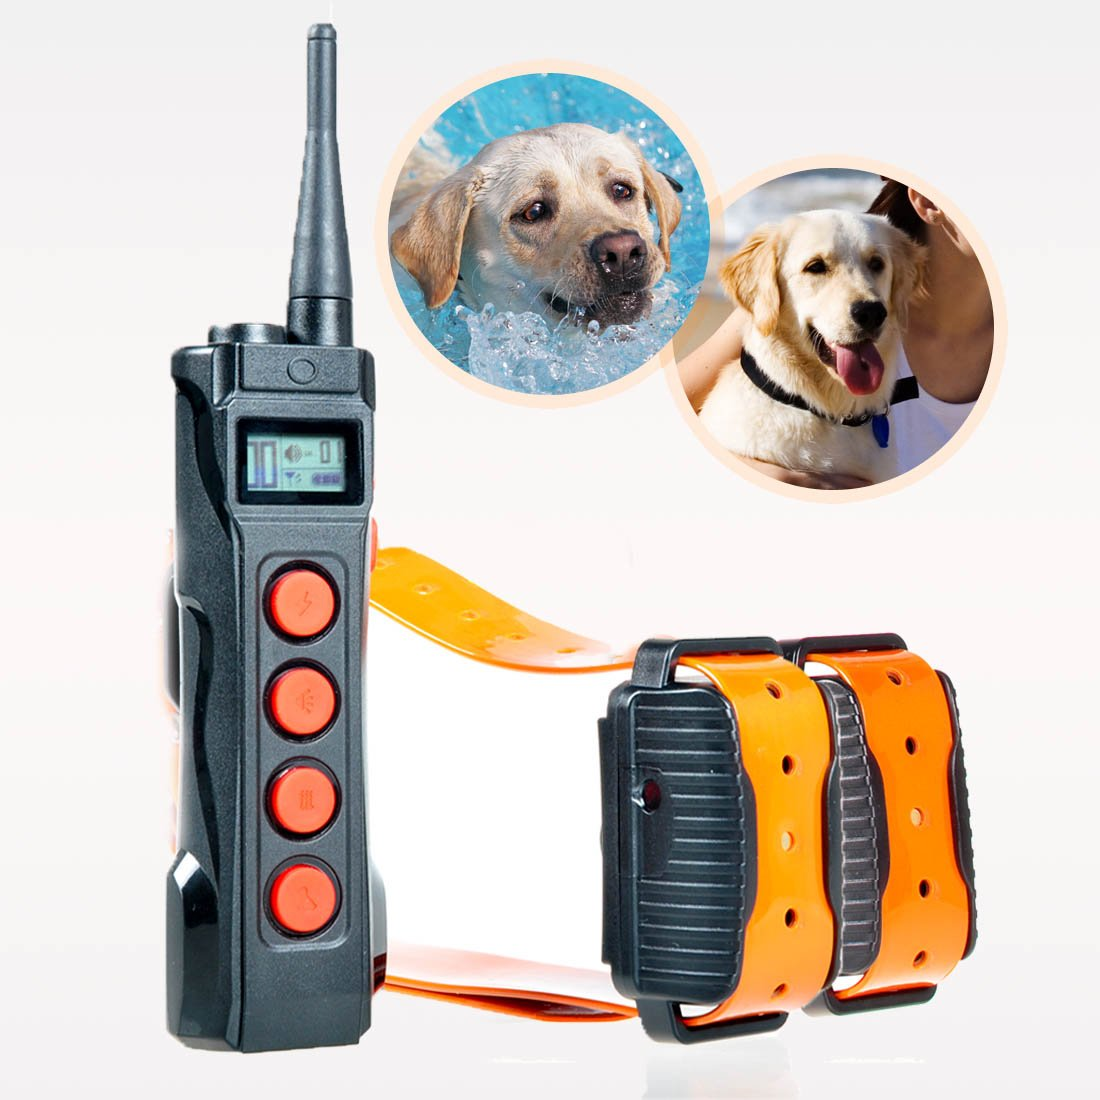 Newly!!! Aetertek AT-919C-2 1095 Yards Remote Shock Control 7 in 1 LCD Rechargeable and Waterproof Pet Dog Training Collar with Shock, Vibrate and Beep Dog Shock Collar for 2 Dogs